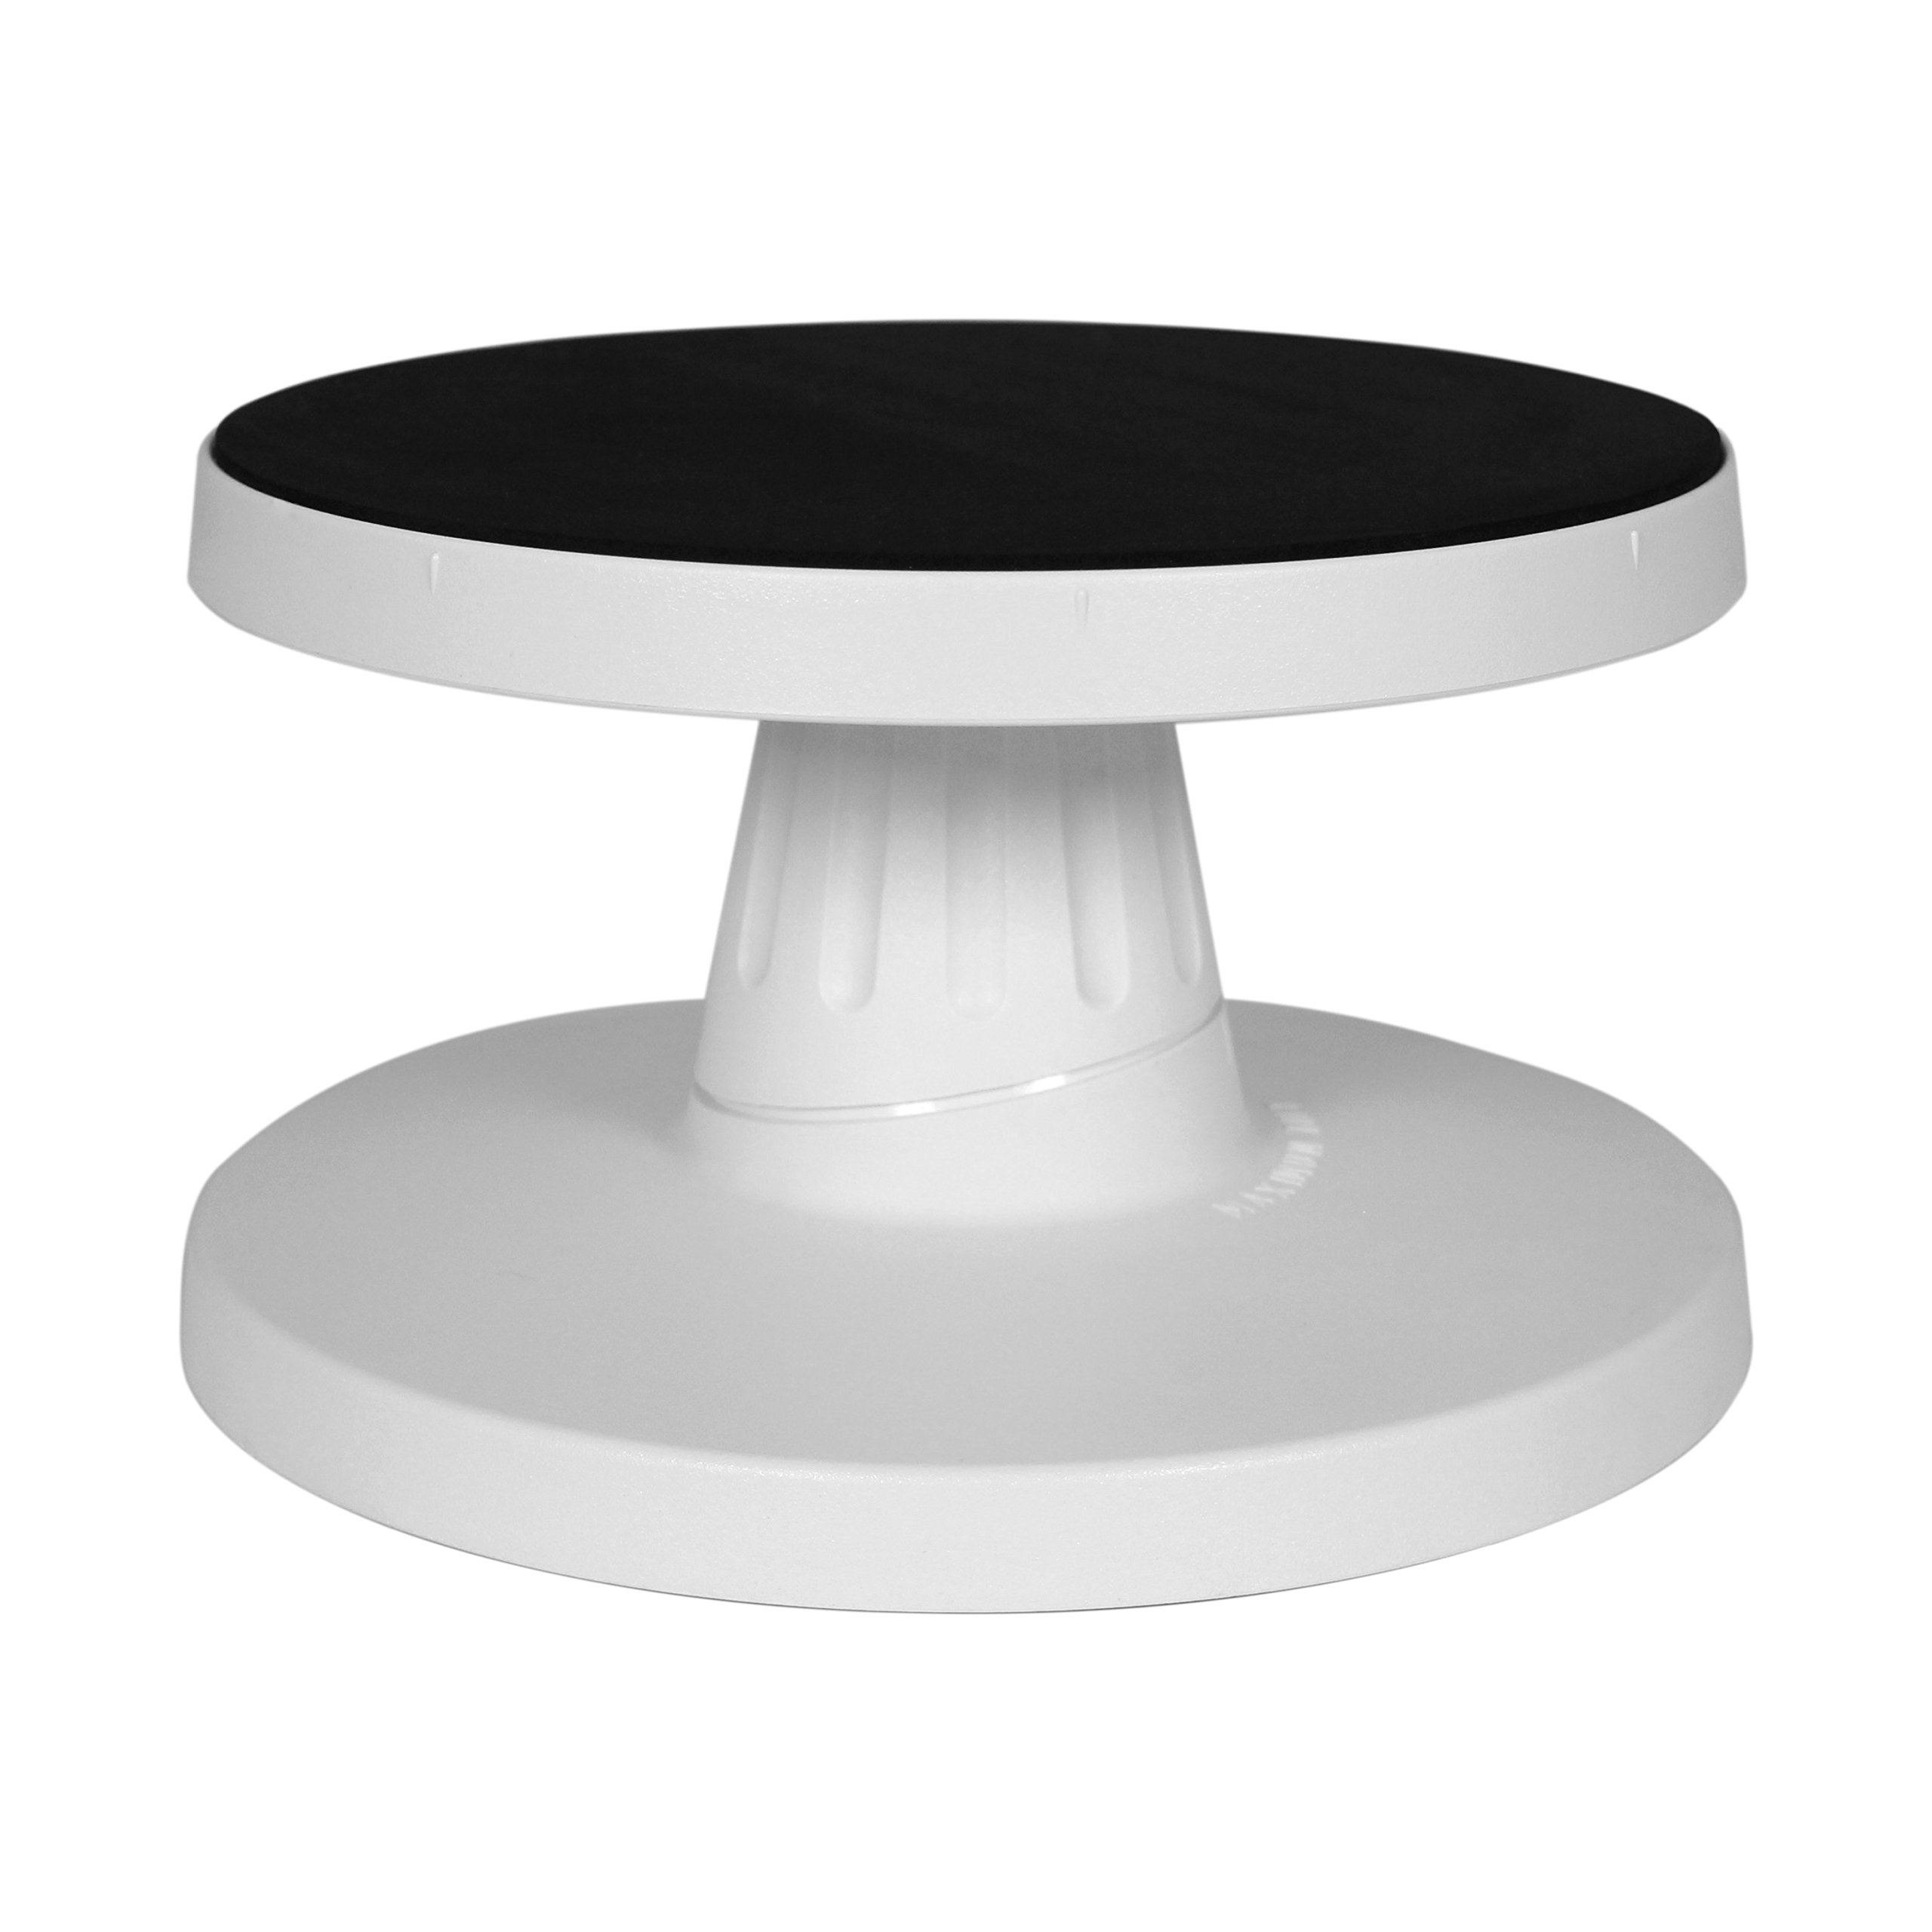 CK Products TT460 PME Tilting Turntable, for Cake Decorating, Standard, White by CK Products (Image #1)